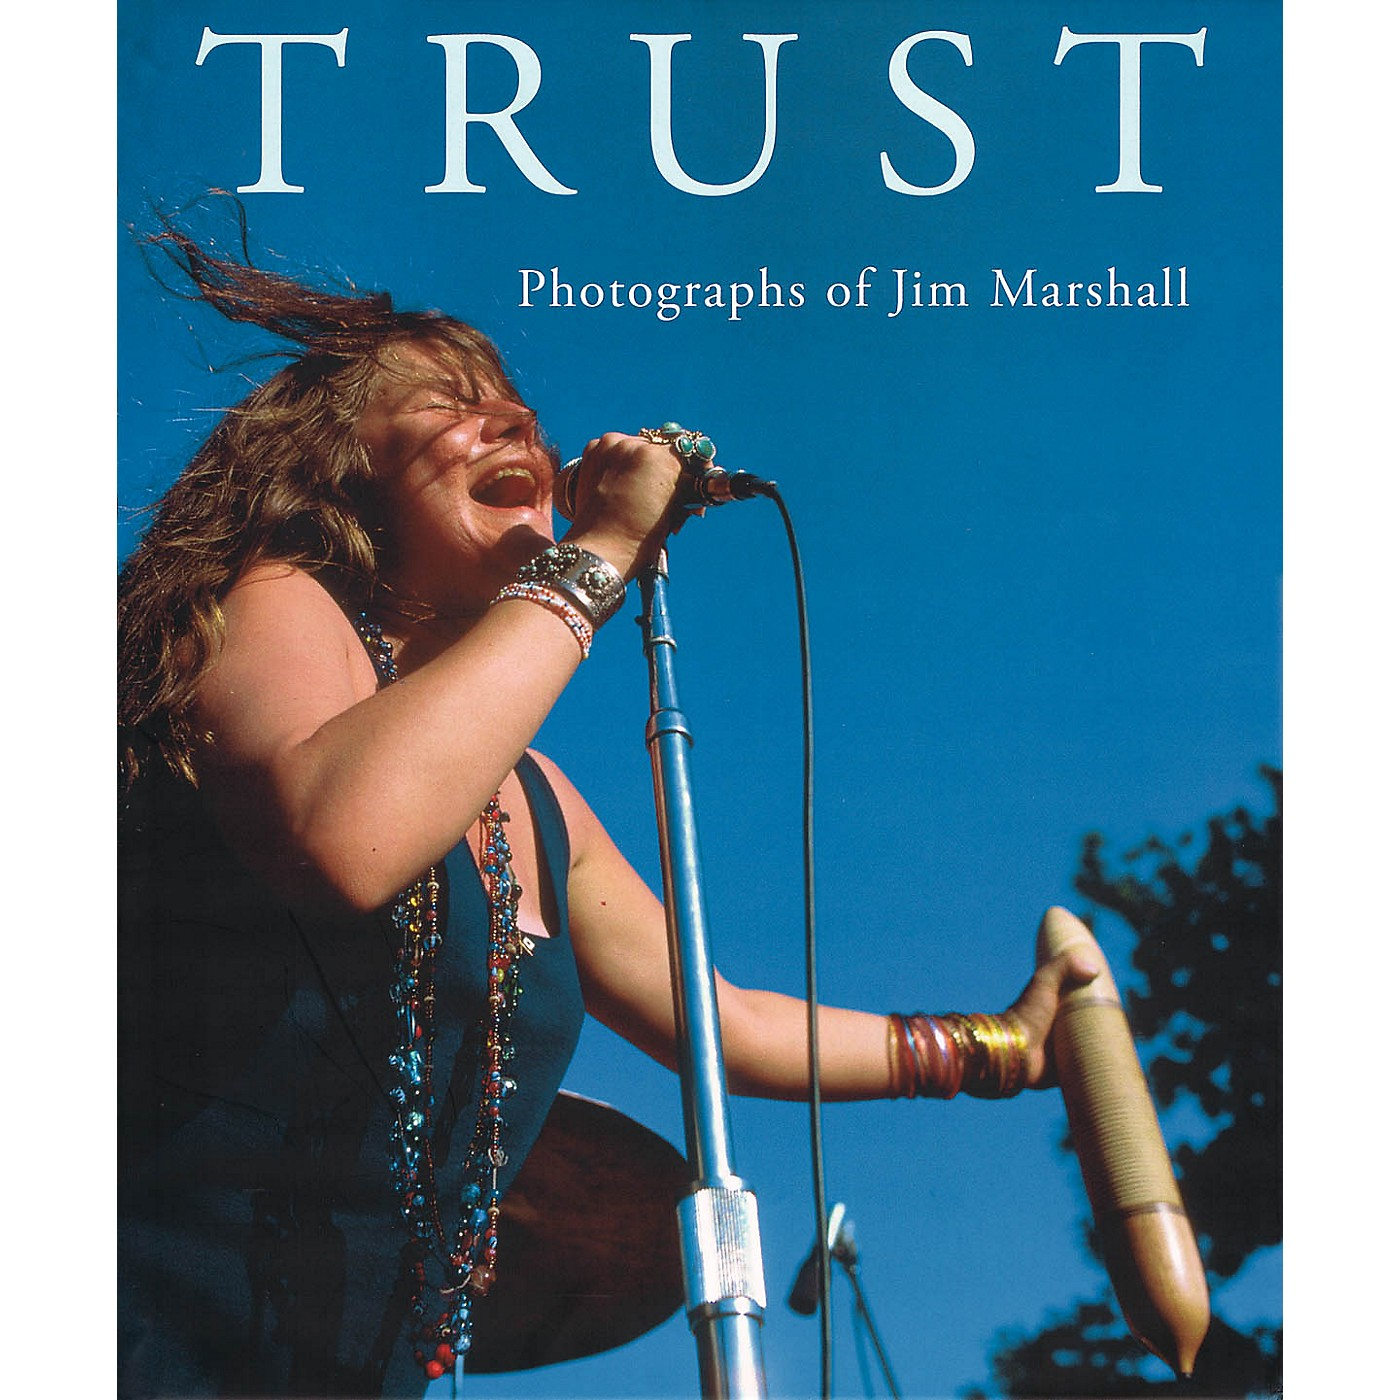 Vision On Trust (Photographs of Jim Marshall) Omnibus Press Series Hardcover Performed by Jim Marshall thumbnail